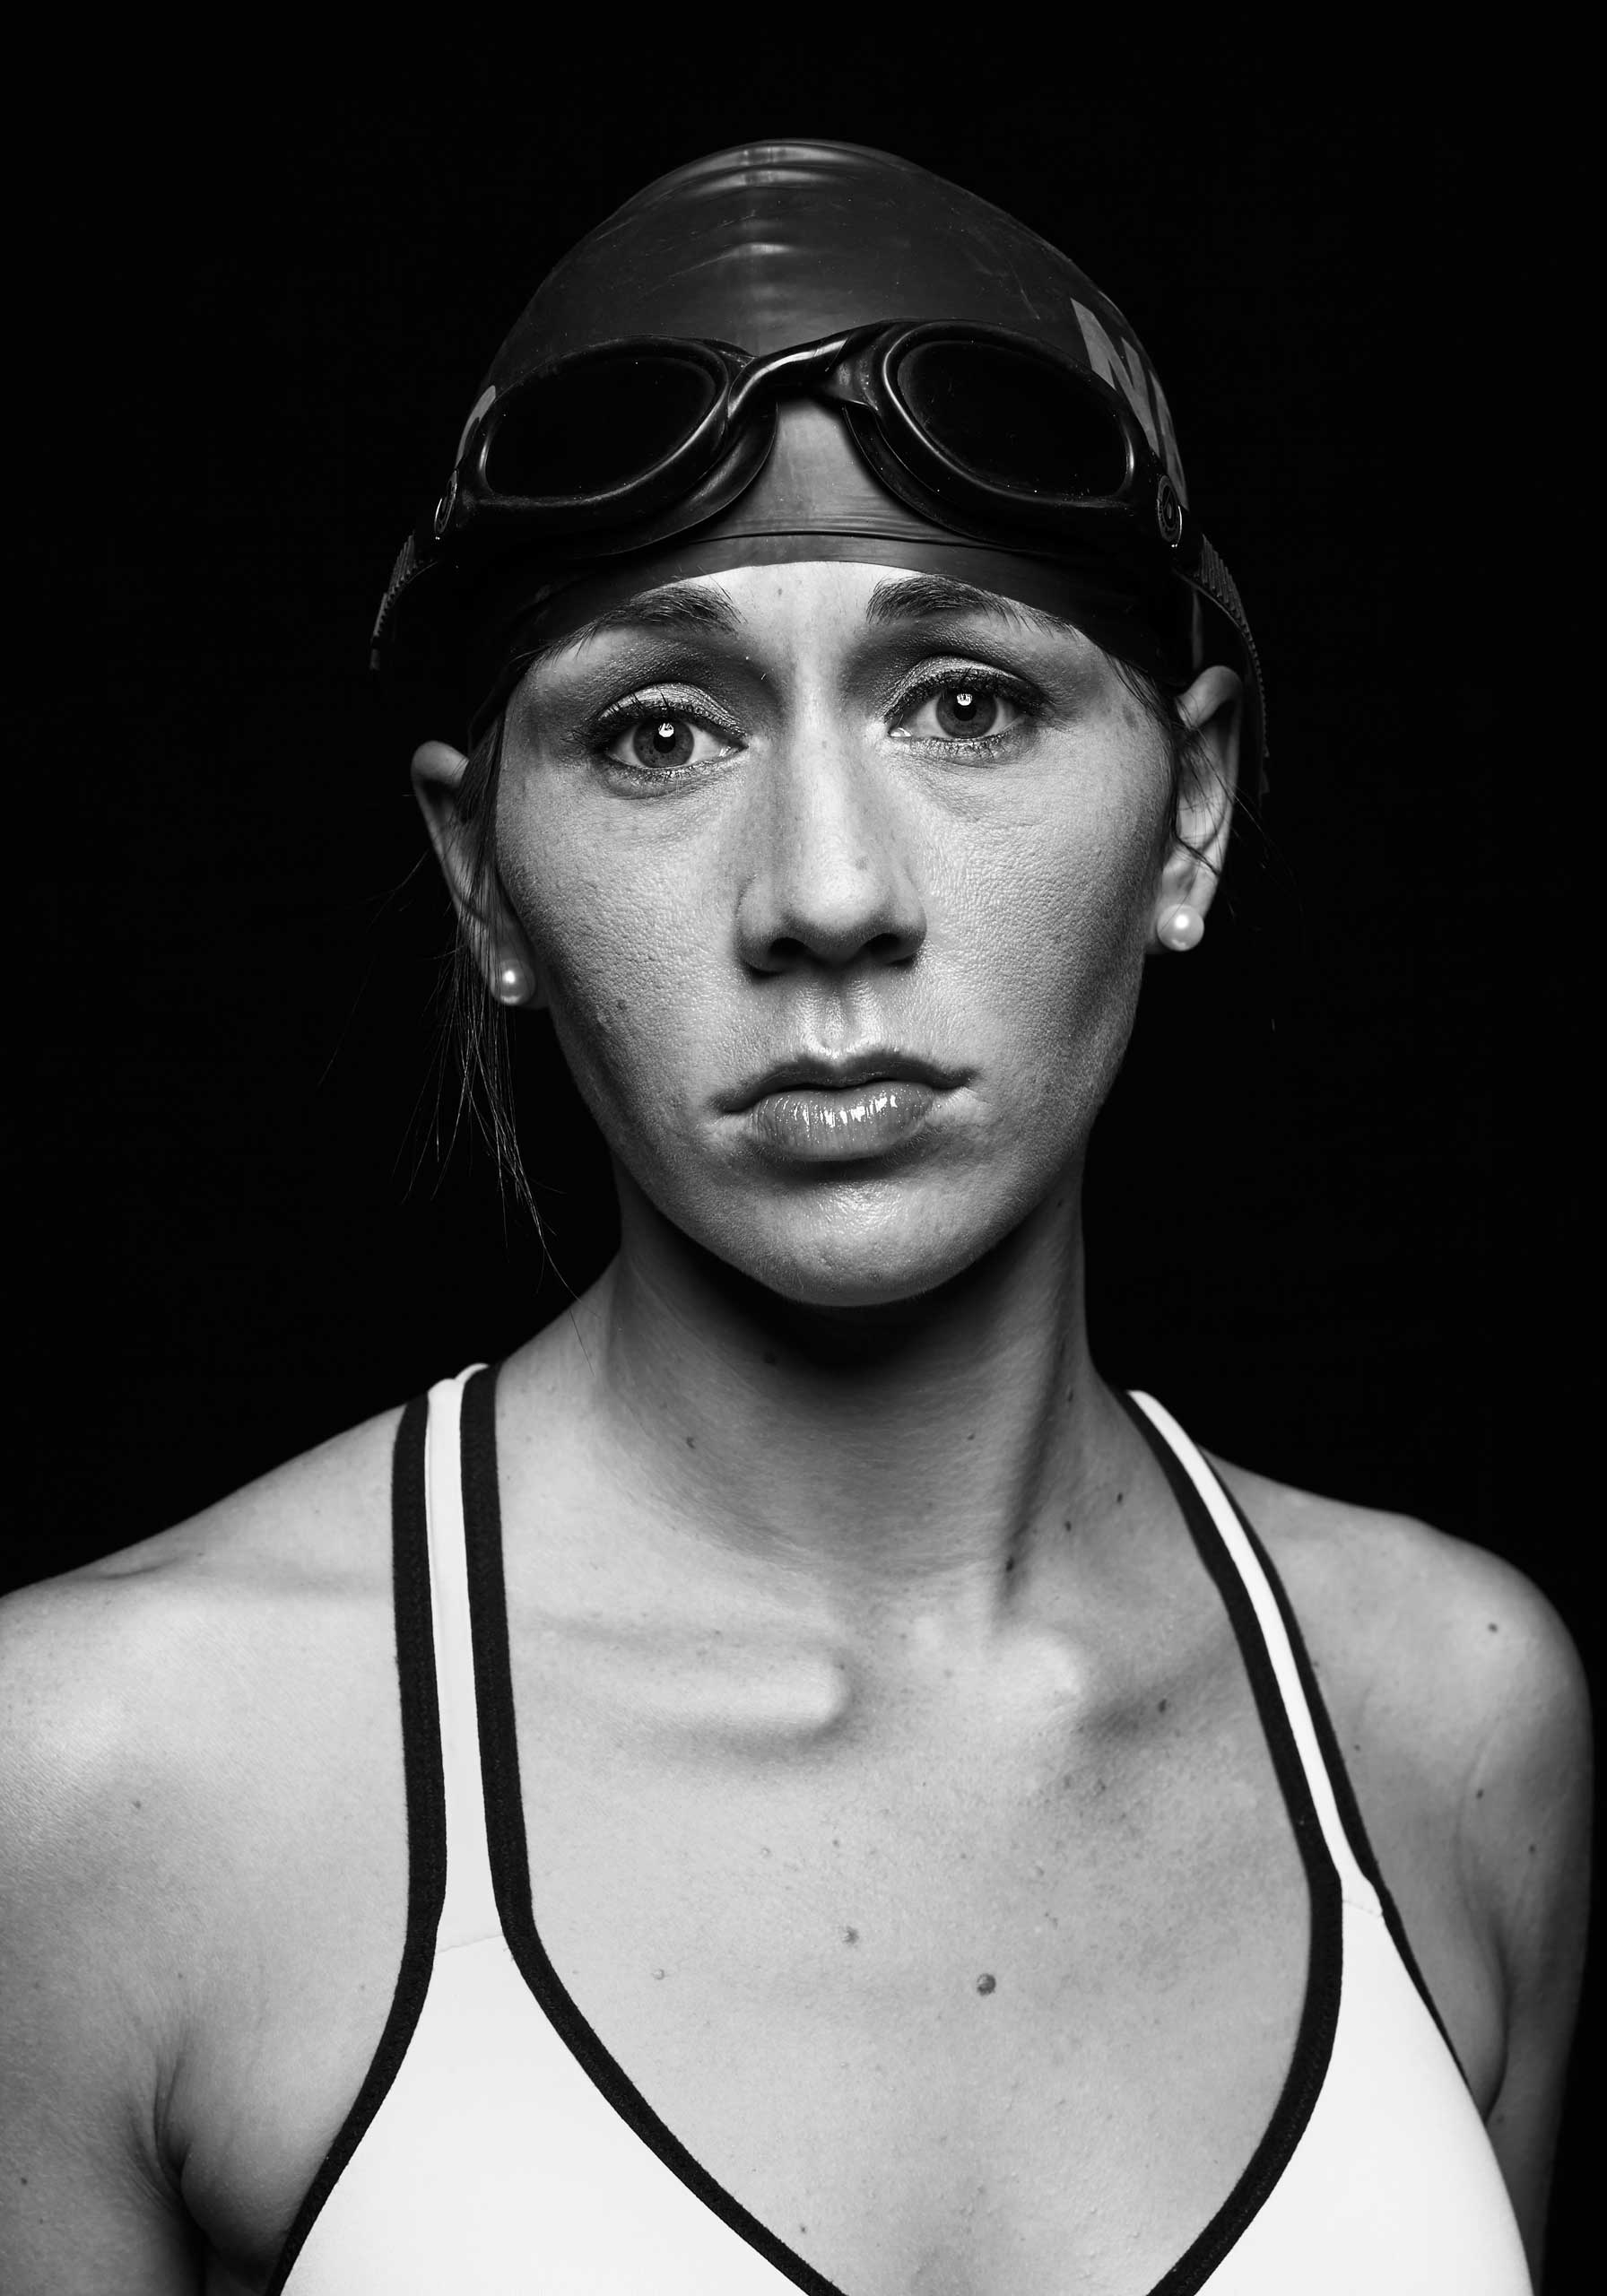 Kristen Esget, Retired Coast Guard Yeoman 3rd Class  Back home, people don't always understand me and the struggles I face because I look perfectly normal. When I am with fellow wounded warrior athletes, I do not feel judged, and I never have to explain myself.